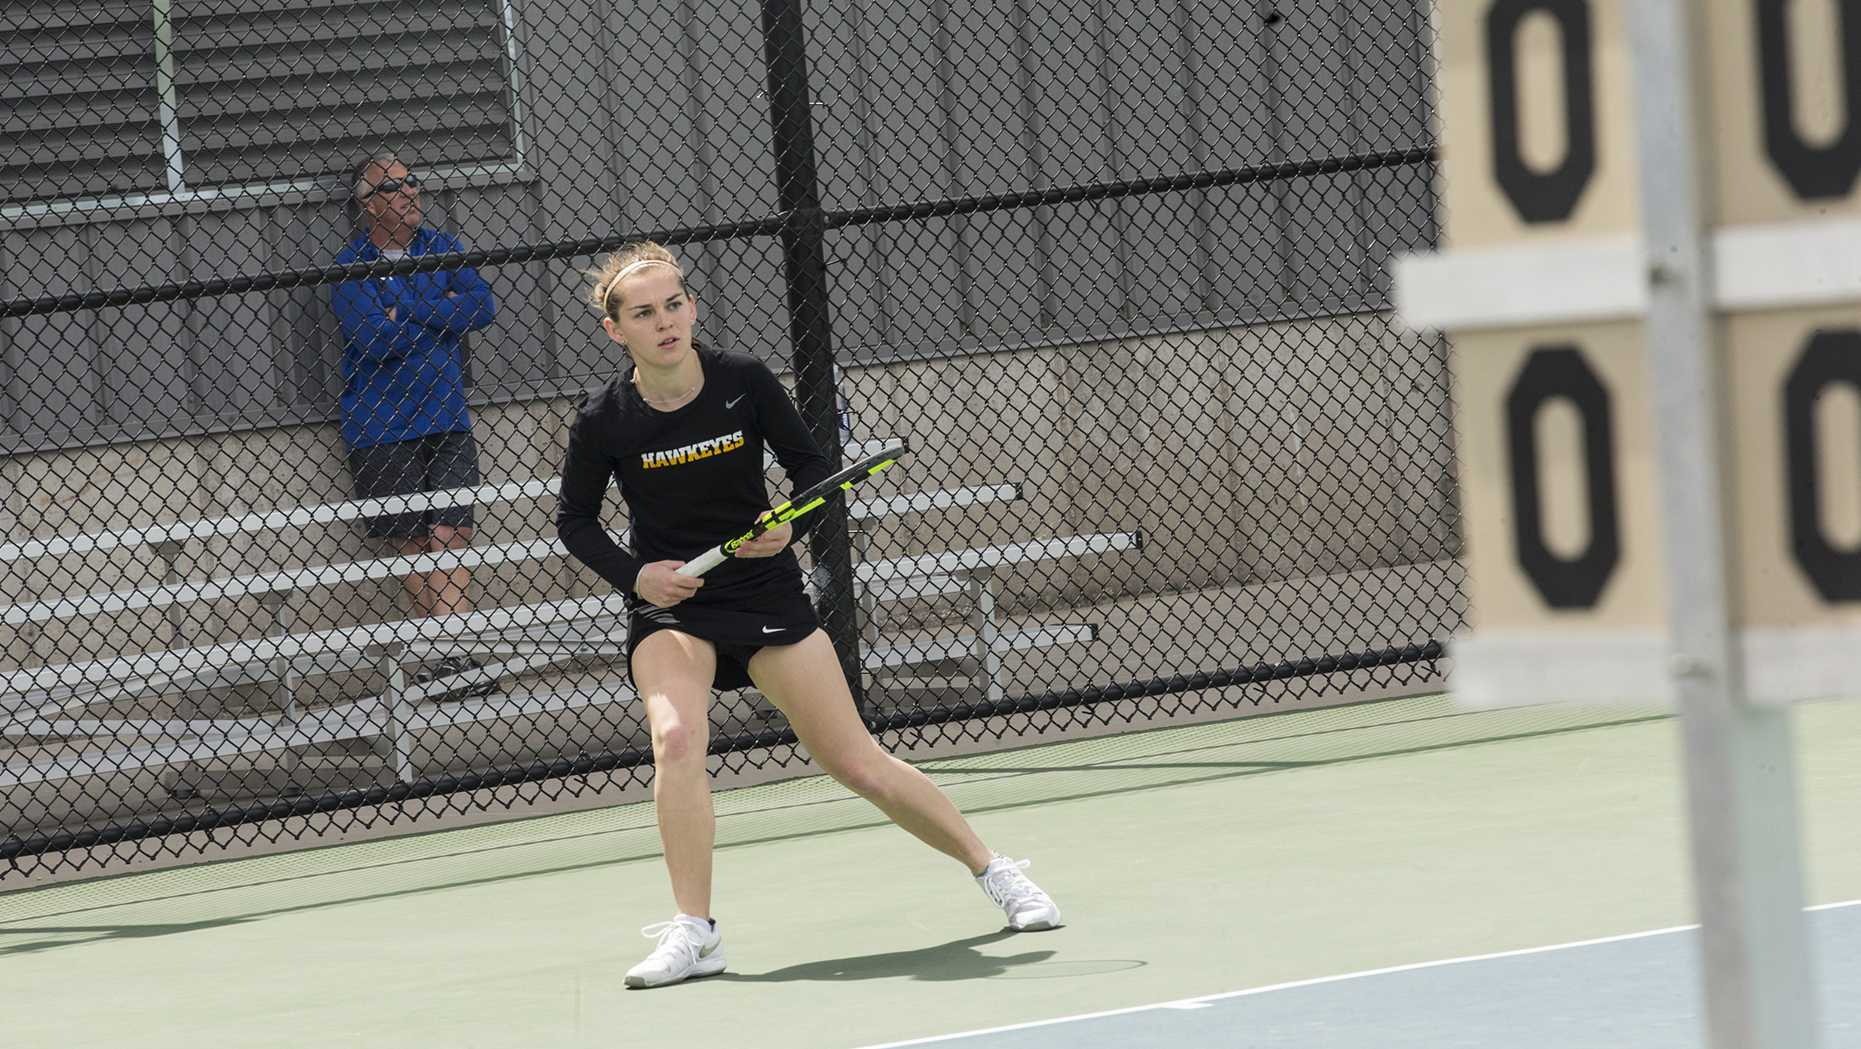 Iowa's Zoe Douglas waits to return the ball during the women's tennis match between Iowa and Wisconsin at the Klotz Tennis Courts on Sunday, April 22, 2018. The Hawkeyes lost to the Badgers, 4-1. (Chris Kalous/The Daily Iowan)